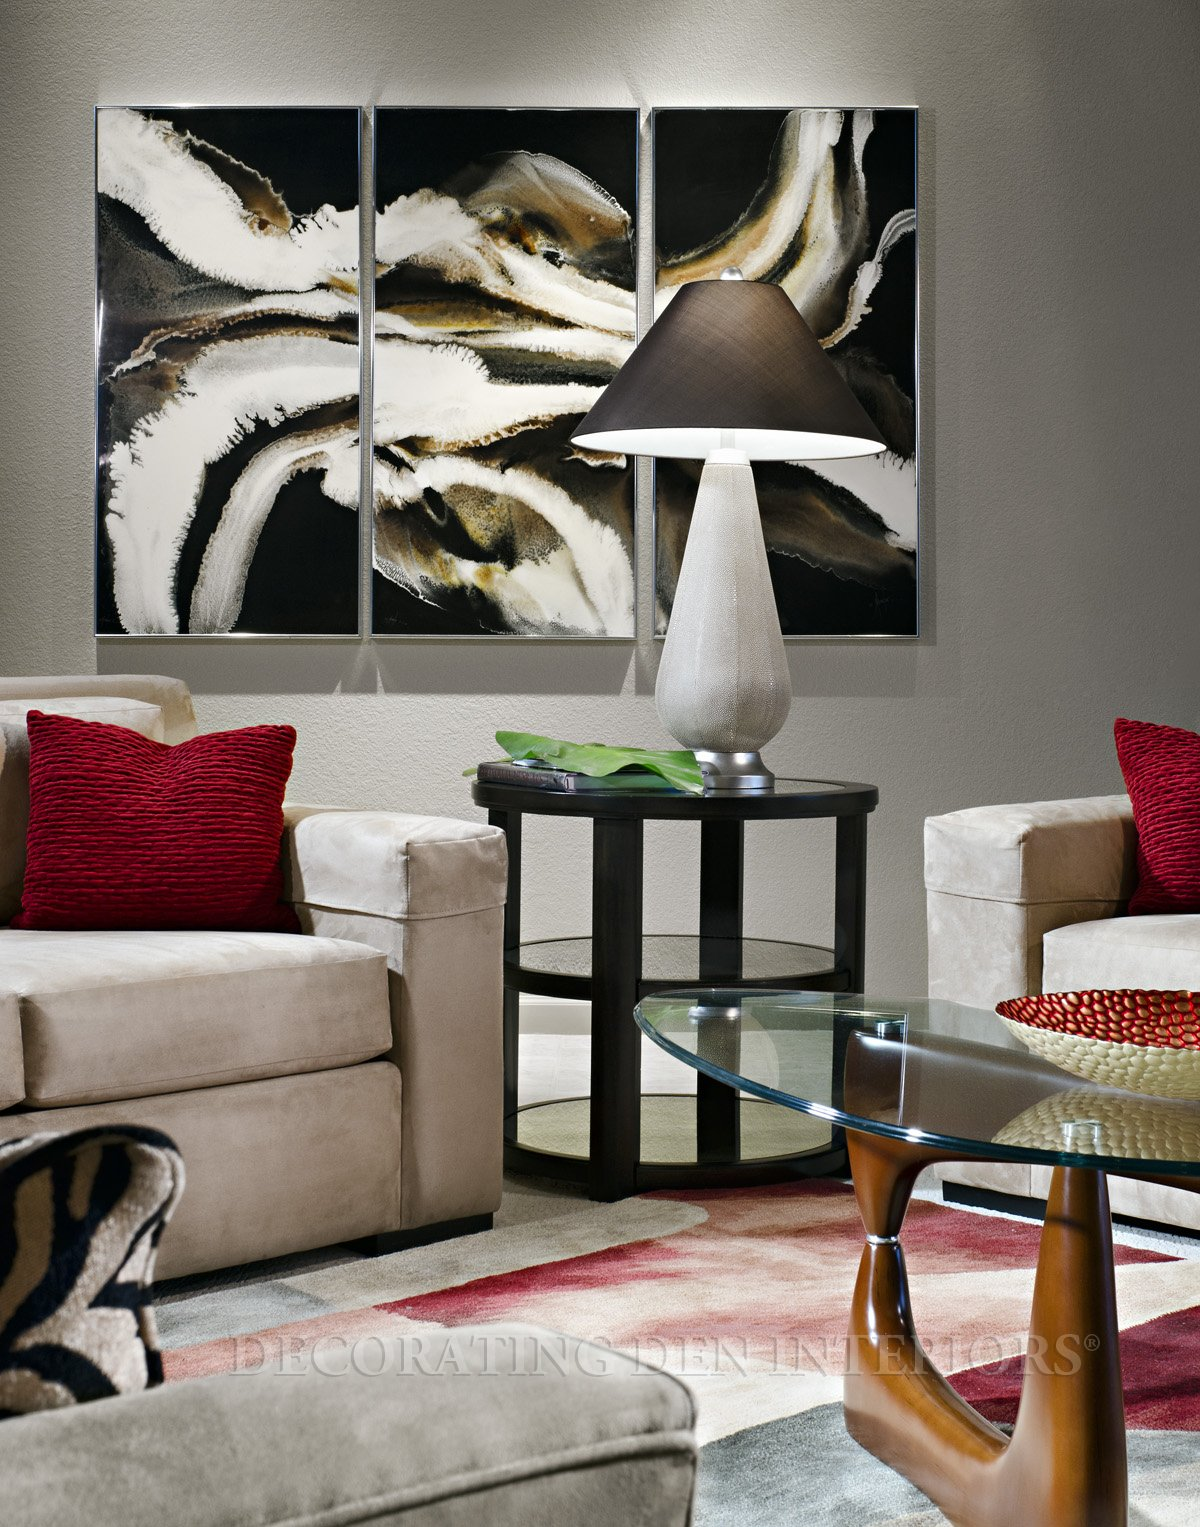 Awesome Artwork Decorating Den Interiors